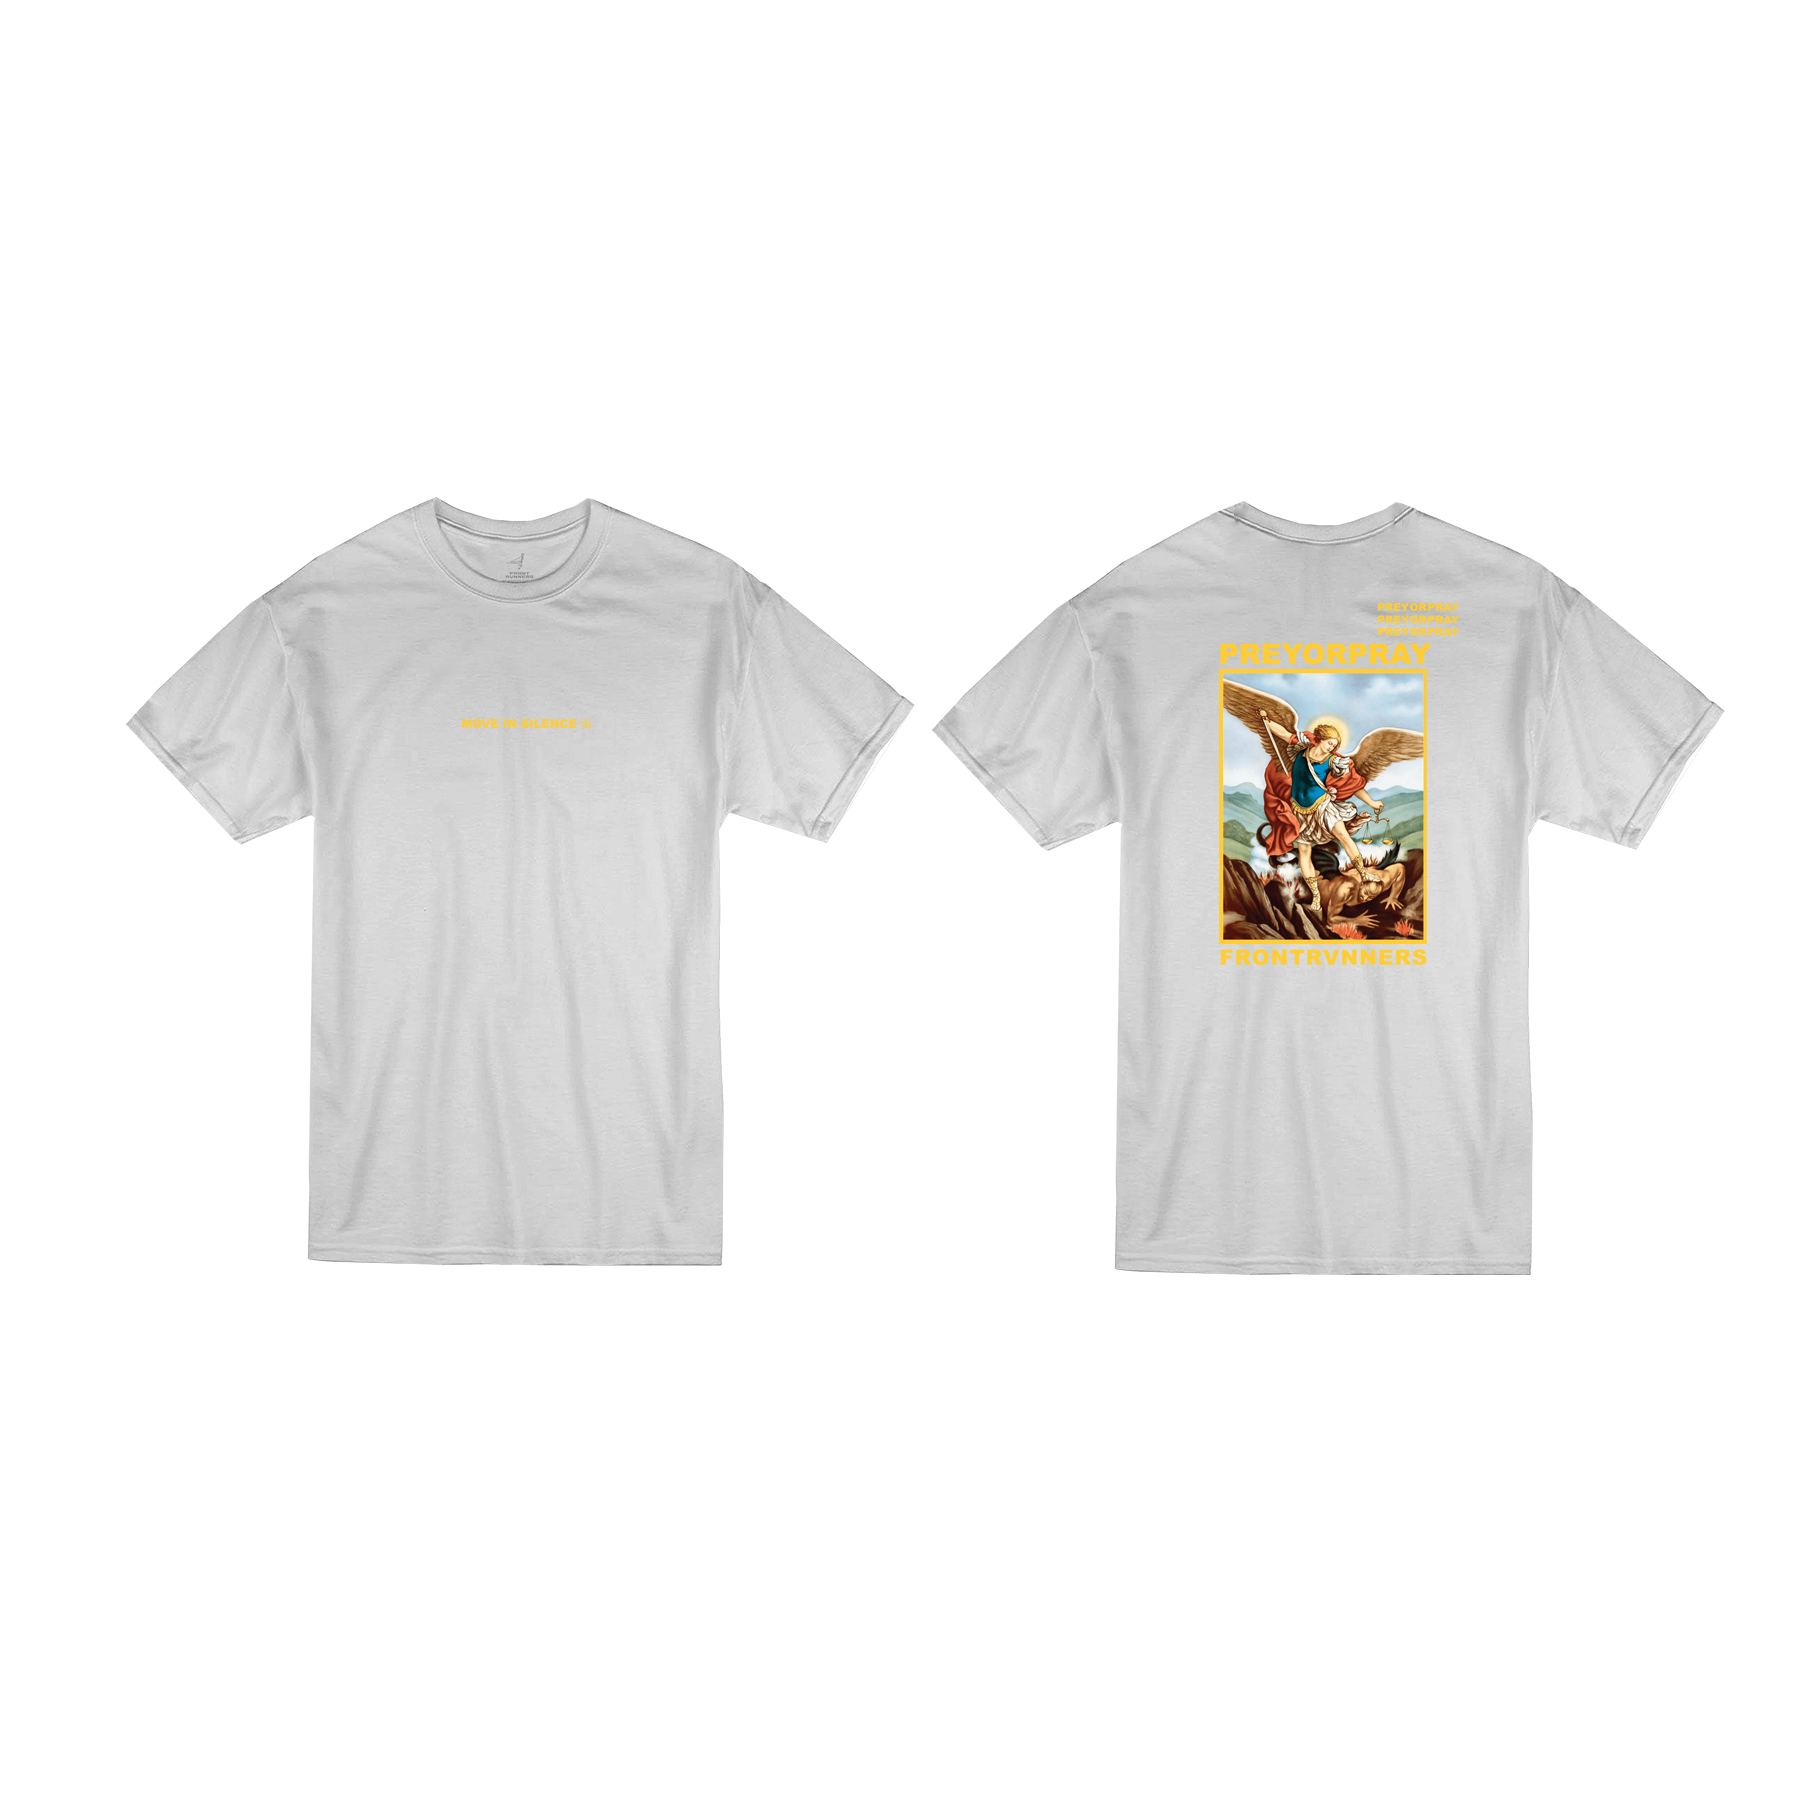 Prey or Pray T Shirt White Front and Back